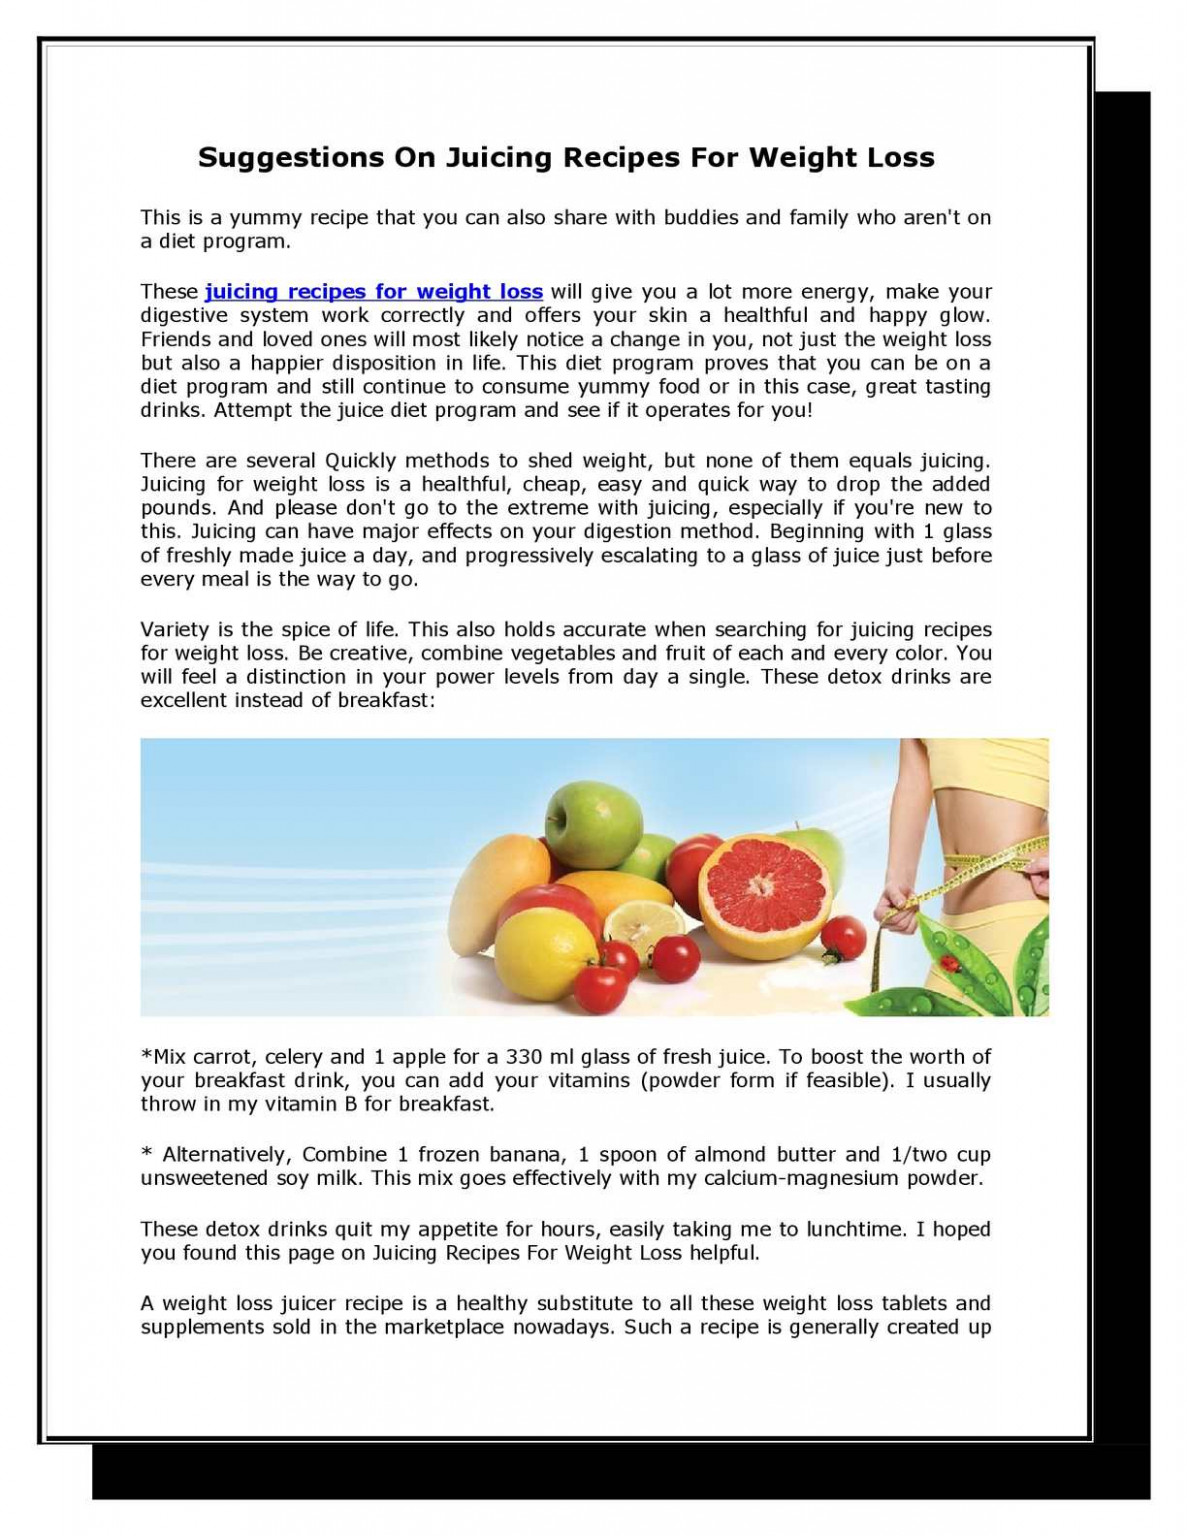 Calaméo - Suggestions On Juicing Recipes For Weight Loss - healthy recipes juicer weight loss